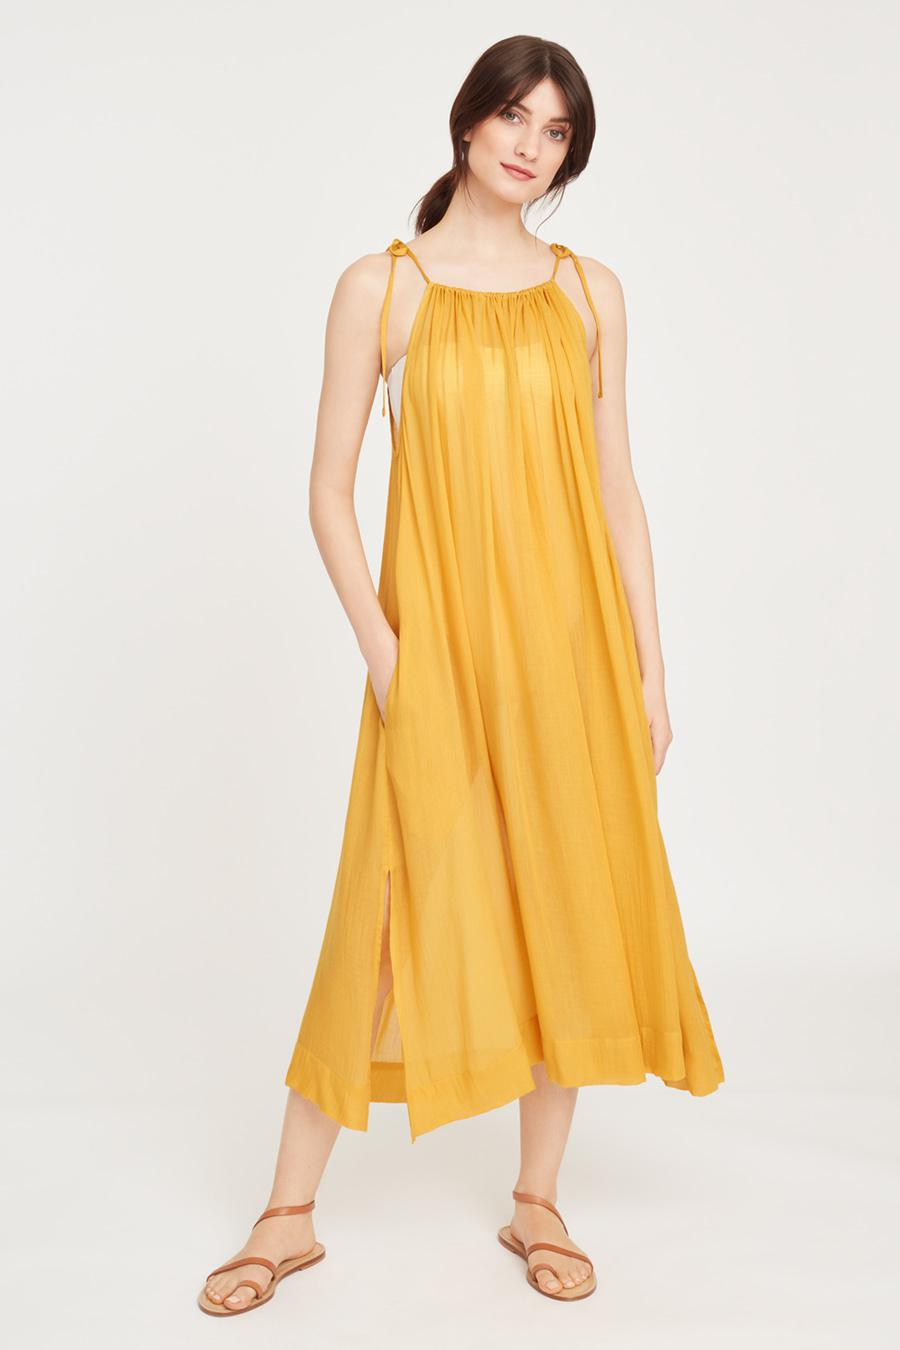 Women's Gathered-Neck Maxi Coverup in Daffodil | Size: 1